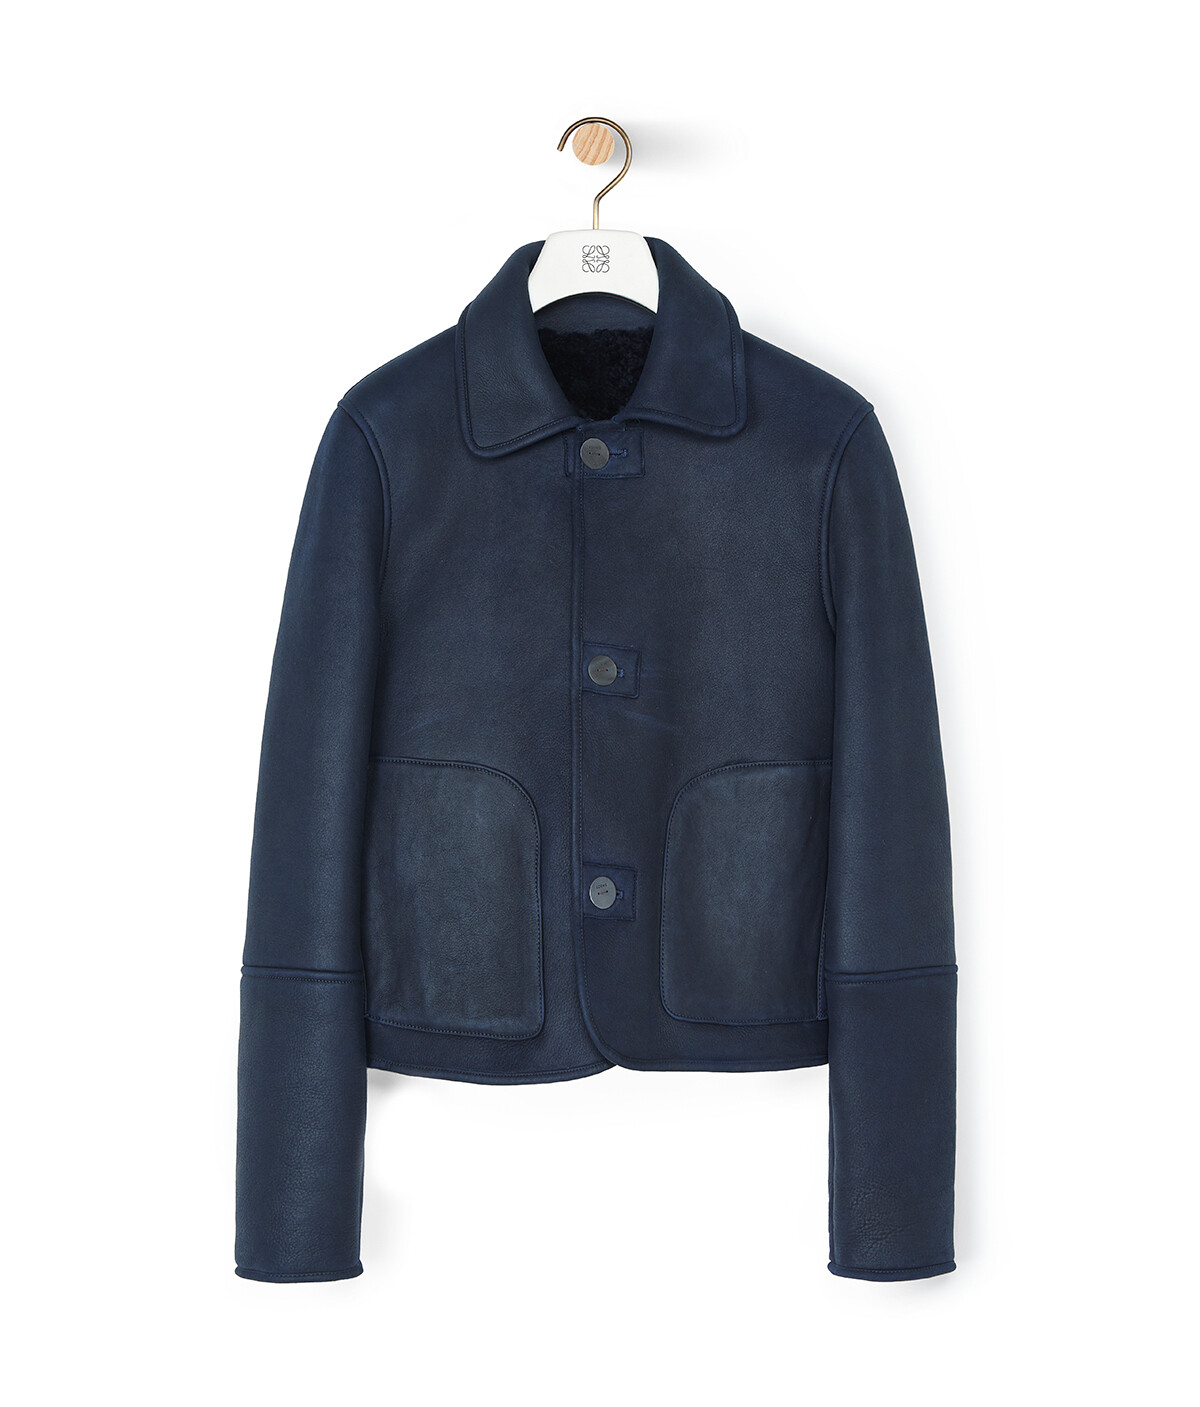 LOEWE Shearling Button Jacket Navy Blue/Navy Blue front